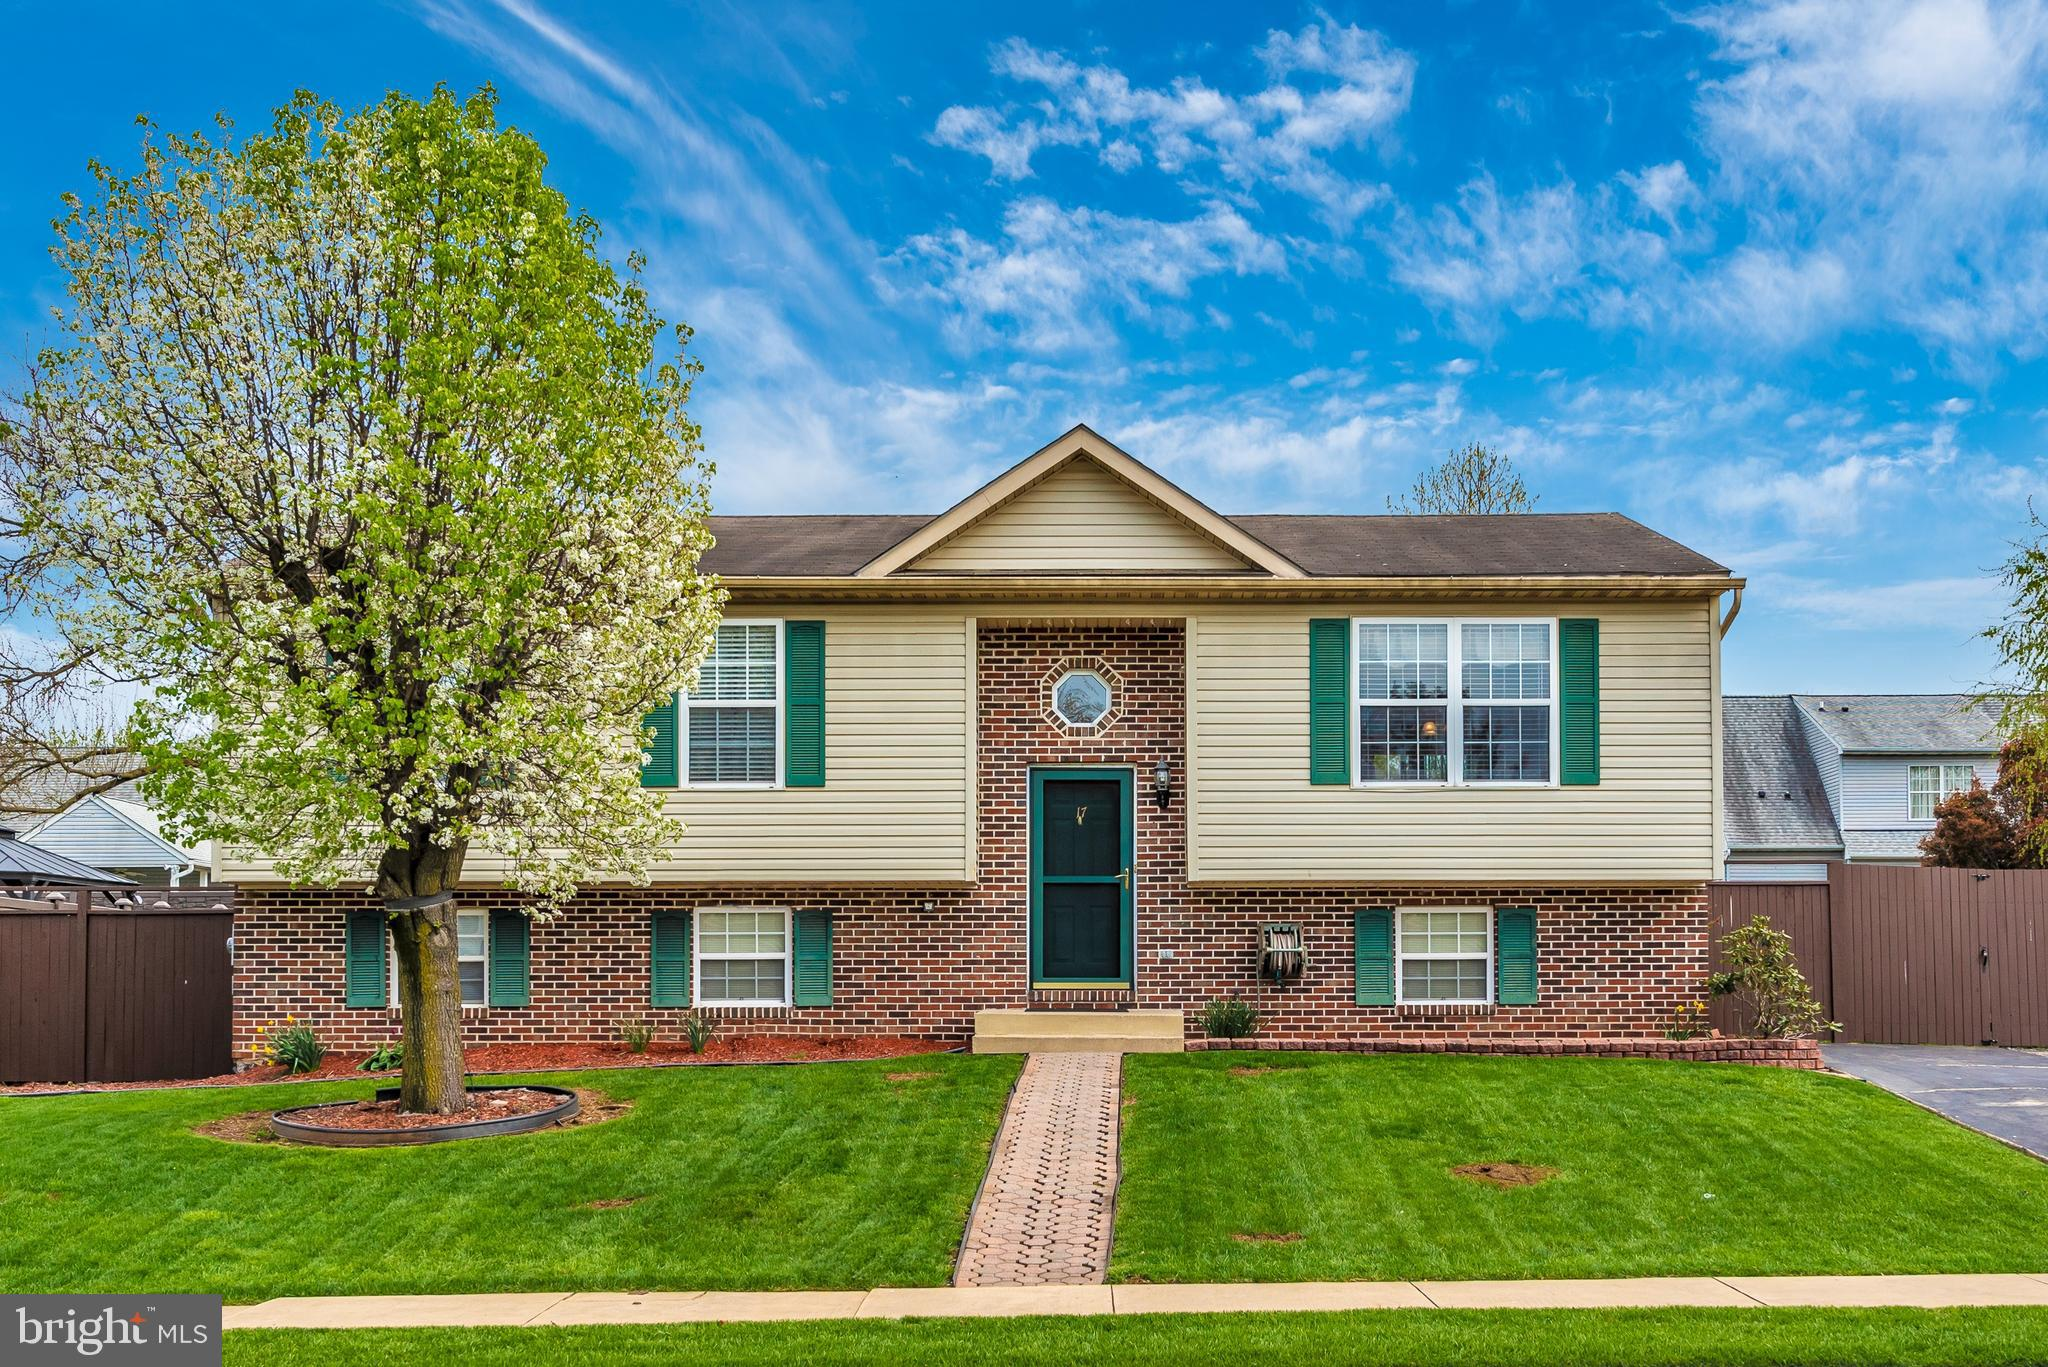 17 Obrien Ave, Taneytown, MD, 21787